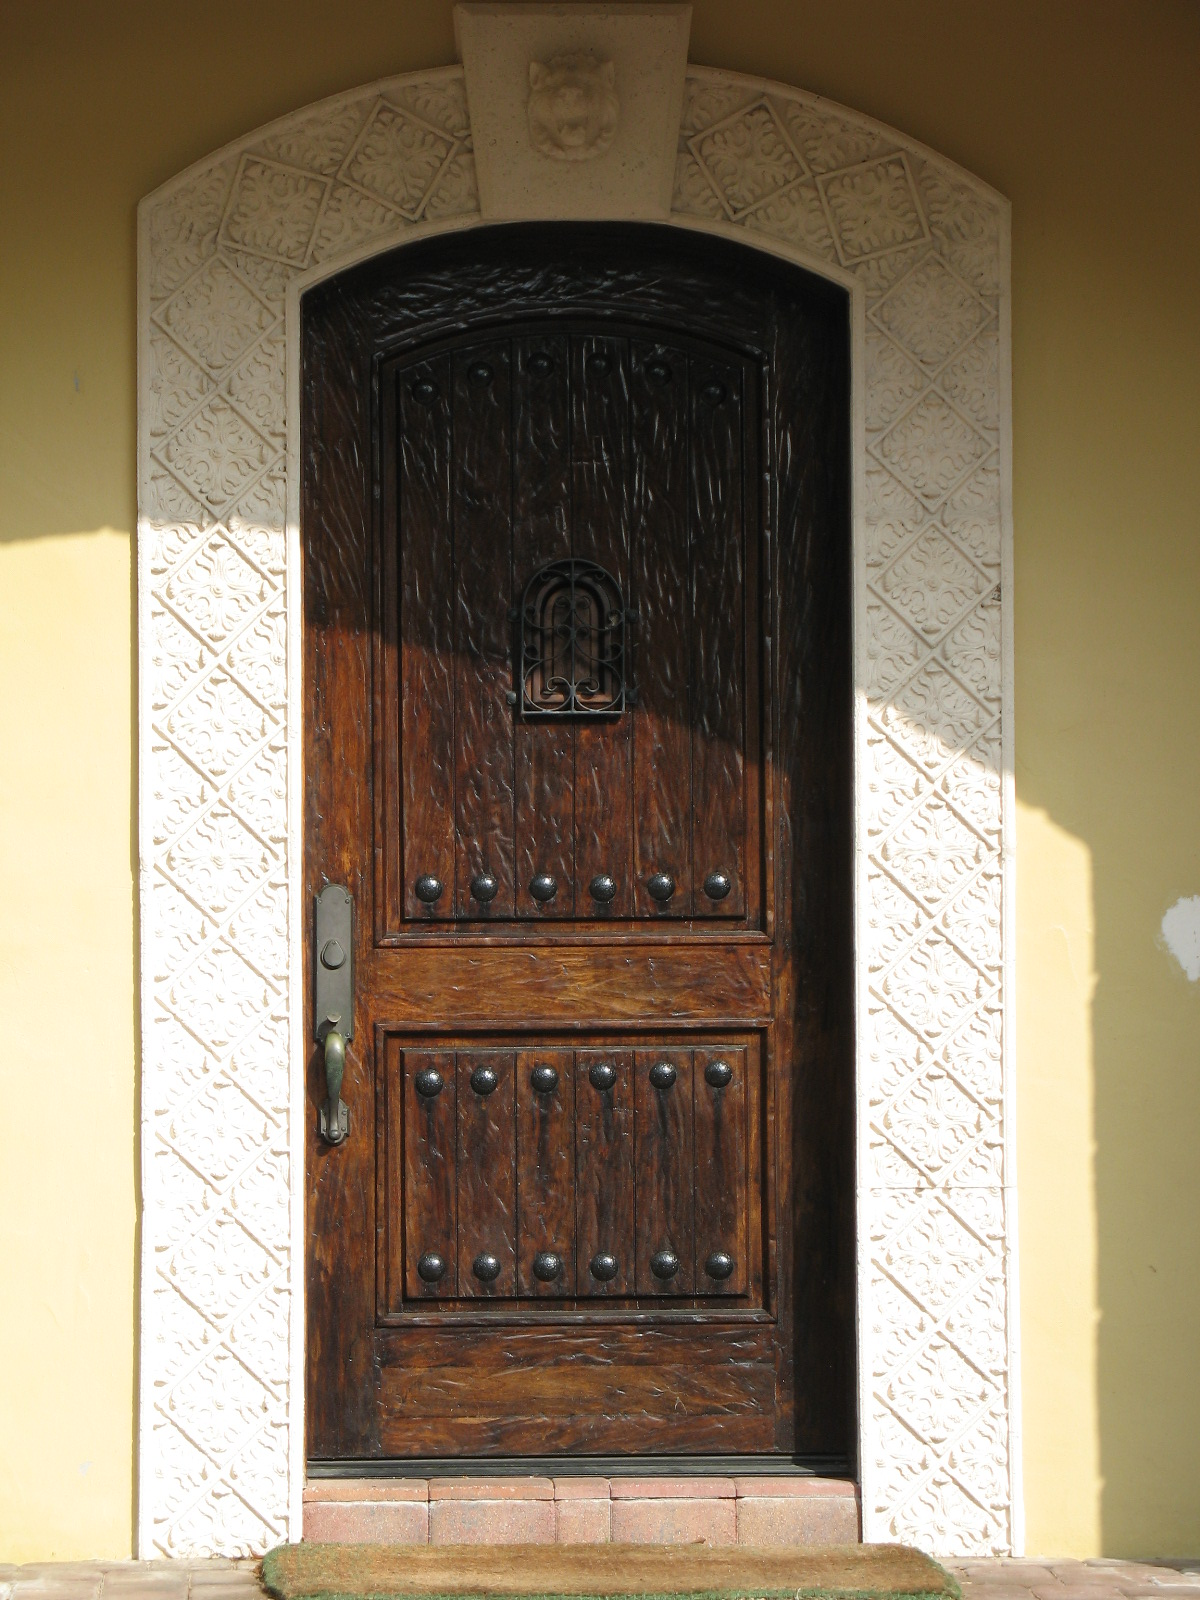 1600 #A78224 SOLID WOOD DOORS image Solid Wood Entrance Doors 41131200